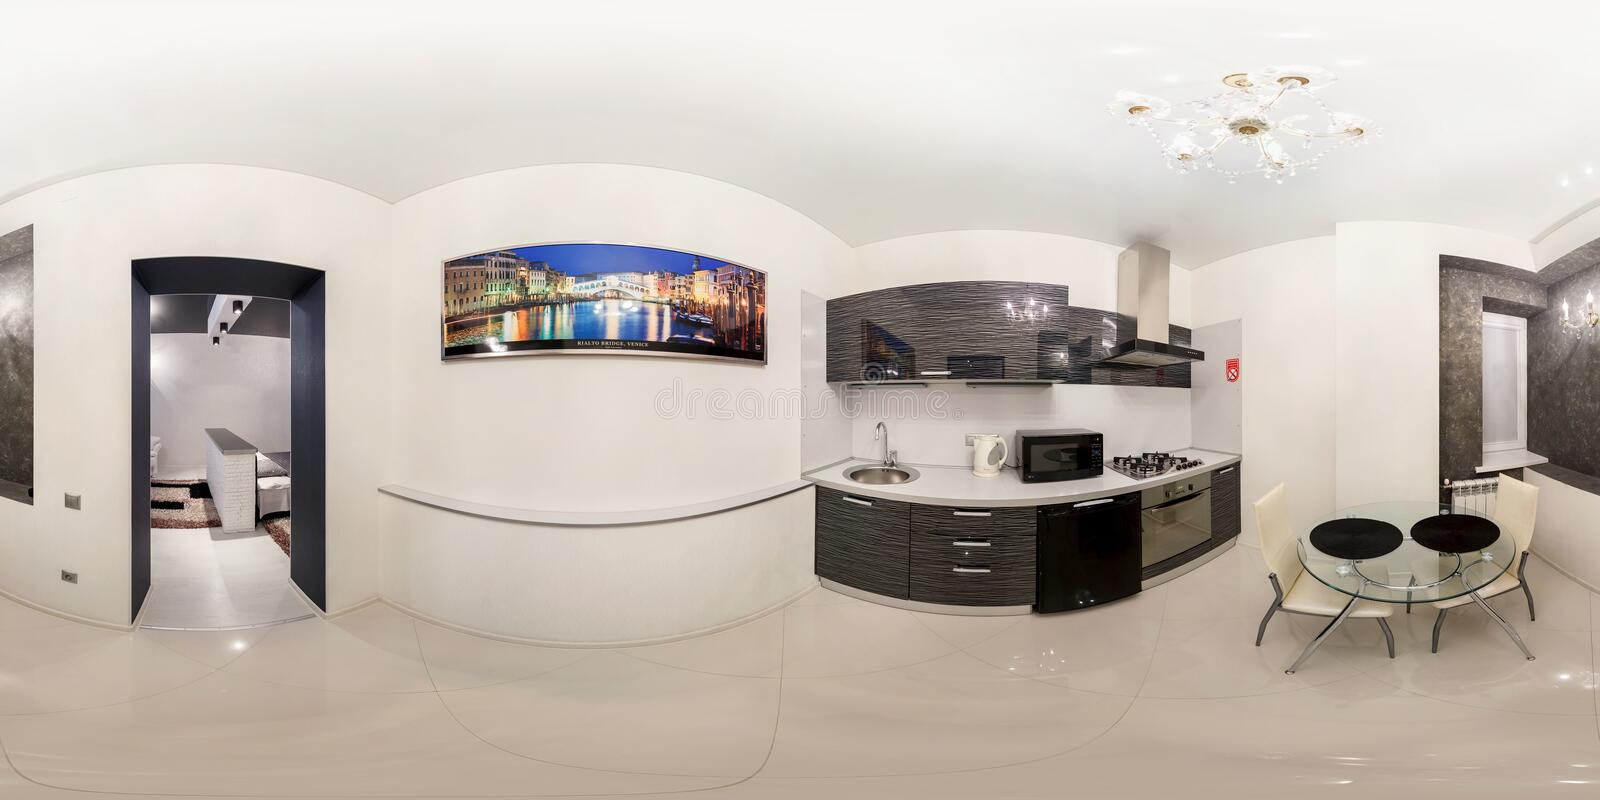 GRODNO, BELARUS - NOVEMBER 12, 2012: Full spherical 360 degrees panorama in equirectangular equidistant projection, seamless. Panorama of kitchen interior royalty free stock photography